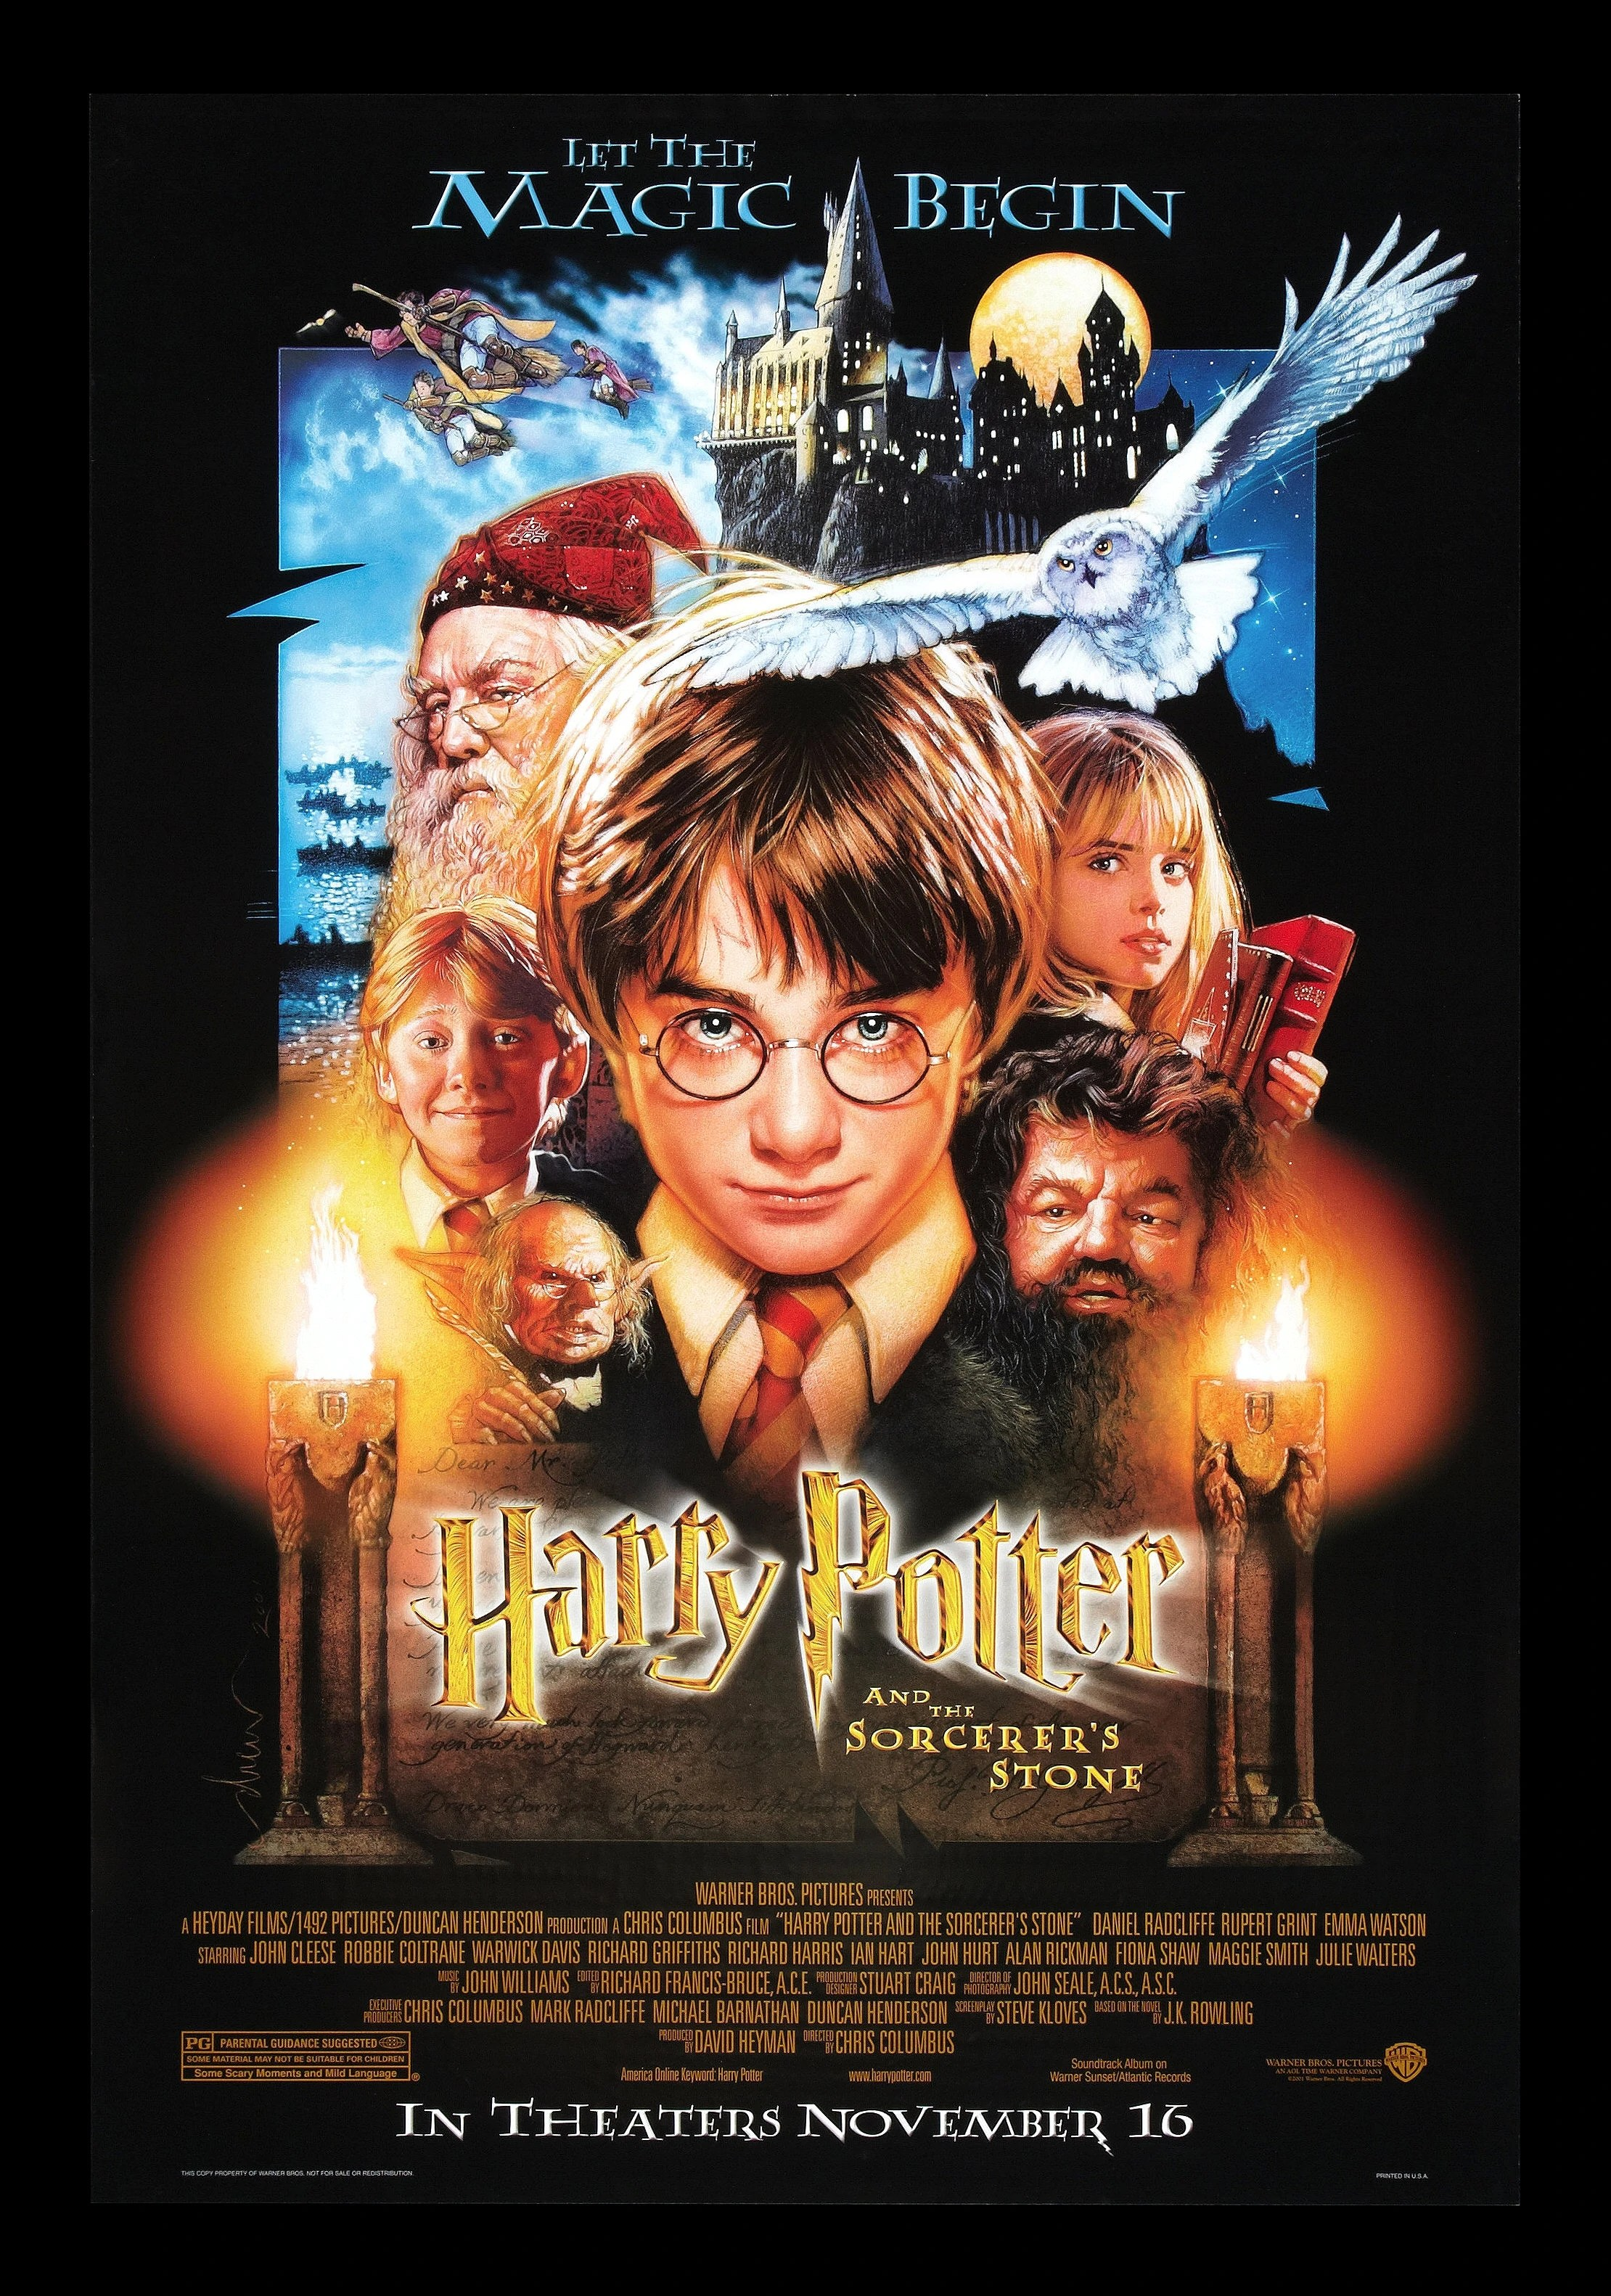 Still the best Harry Potter poster